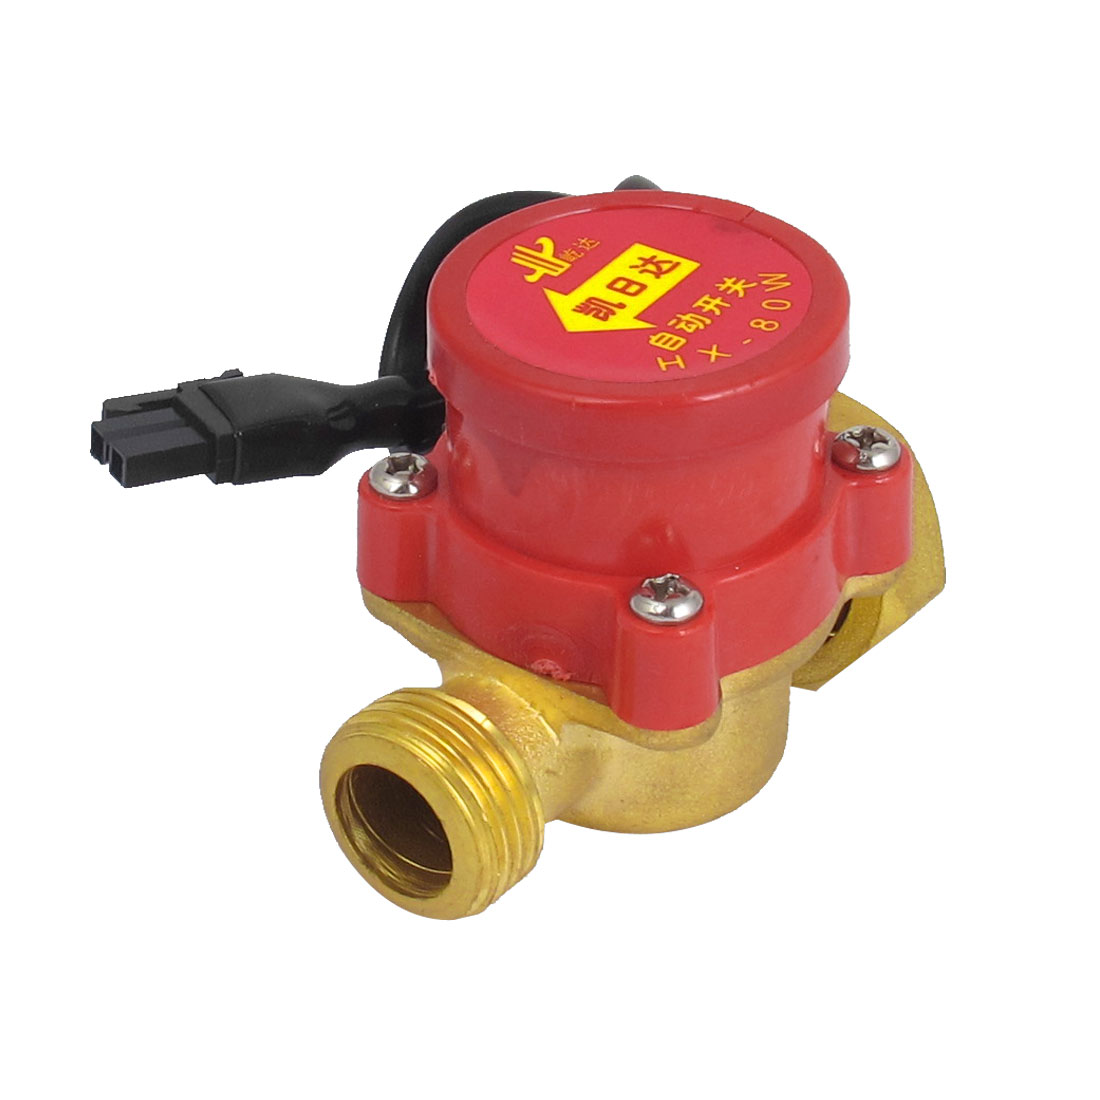 DC 250V 10A 0.6MPa 0.75-5L/min 80W 1/2BSP Male to 3/4BSP Female Thread Water Fluid Flow Sensor Control Switch